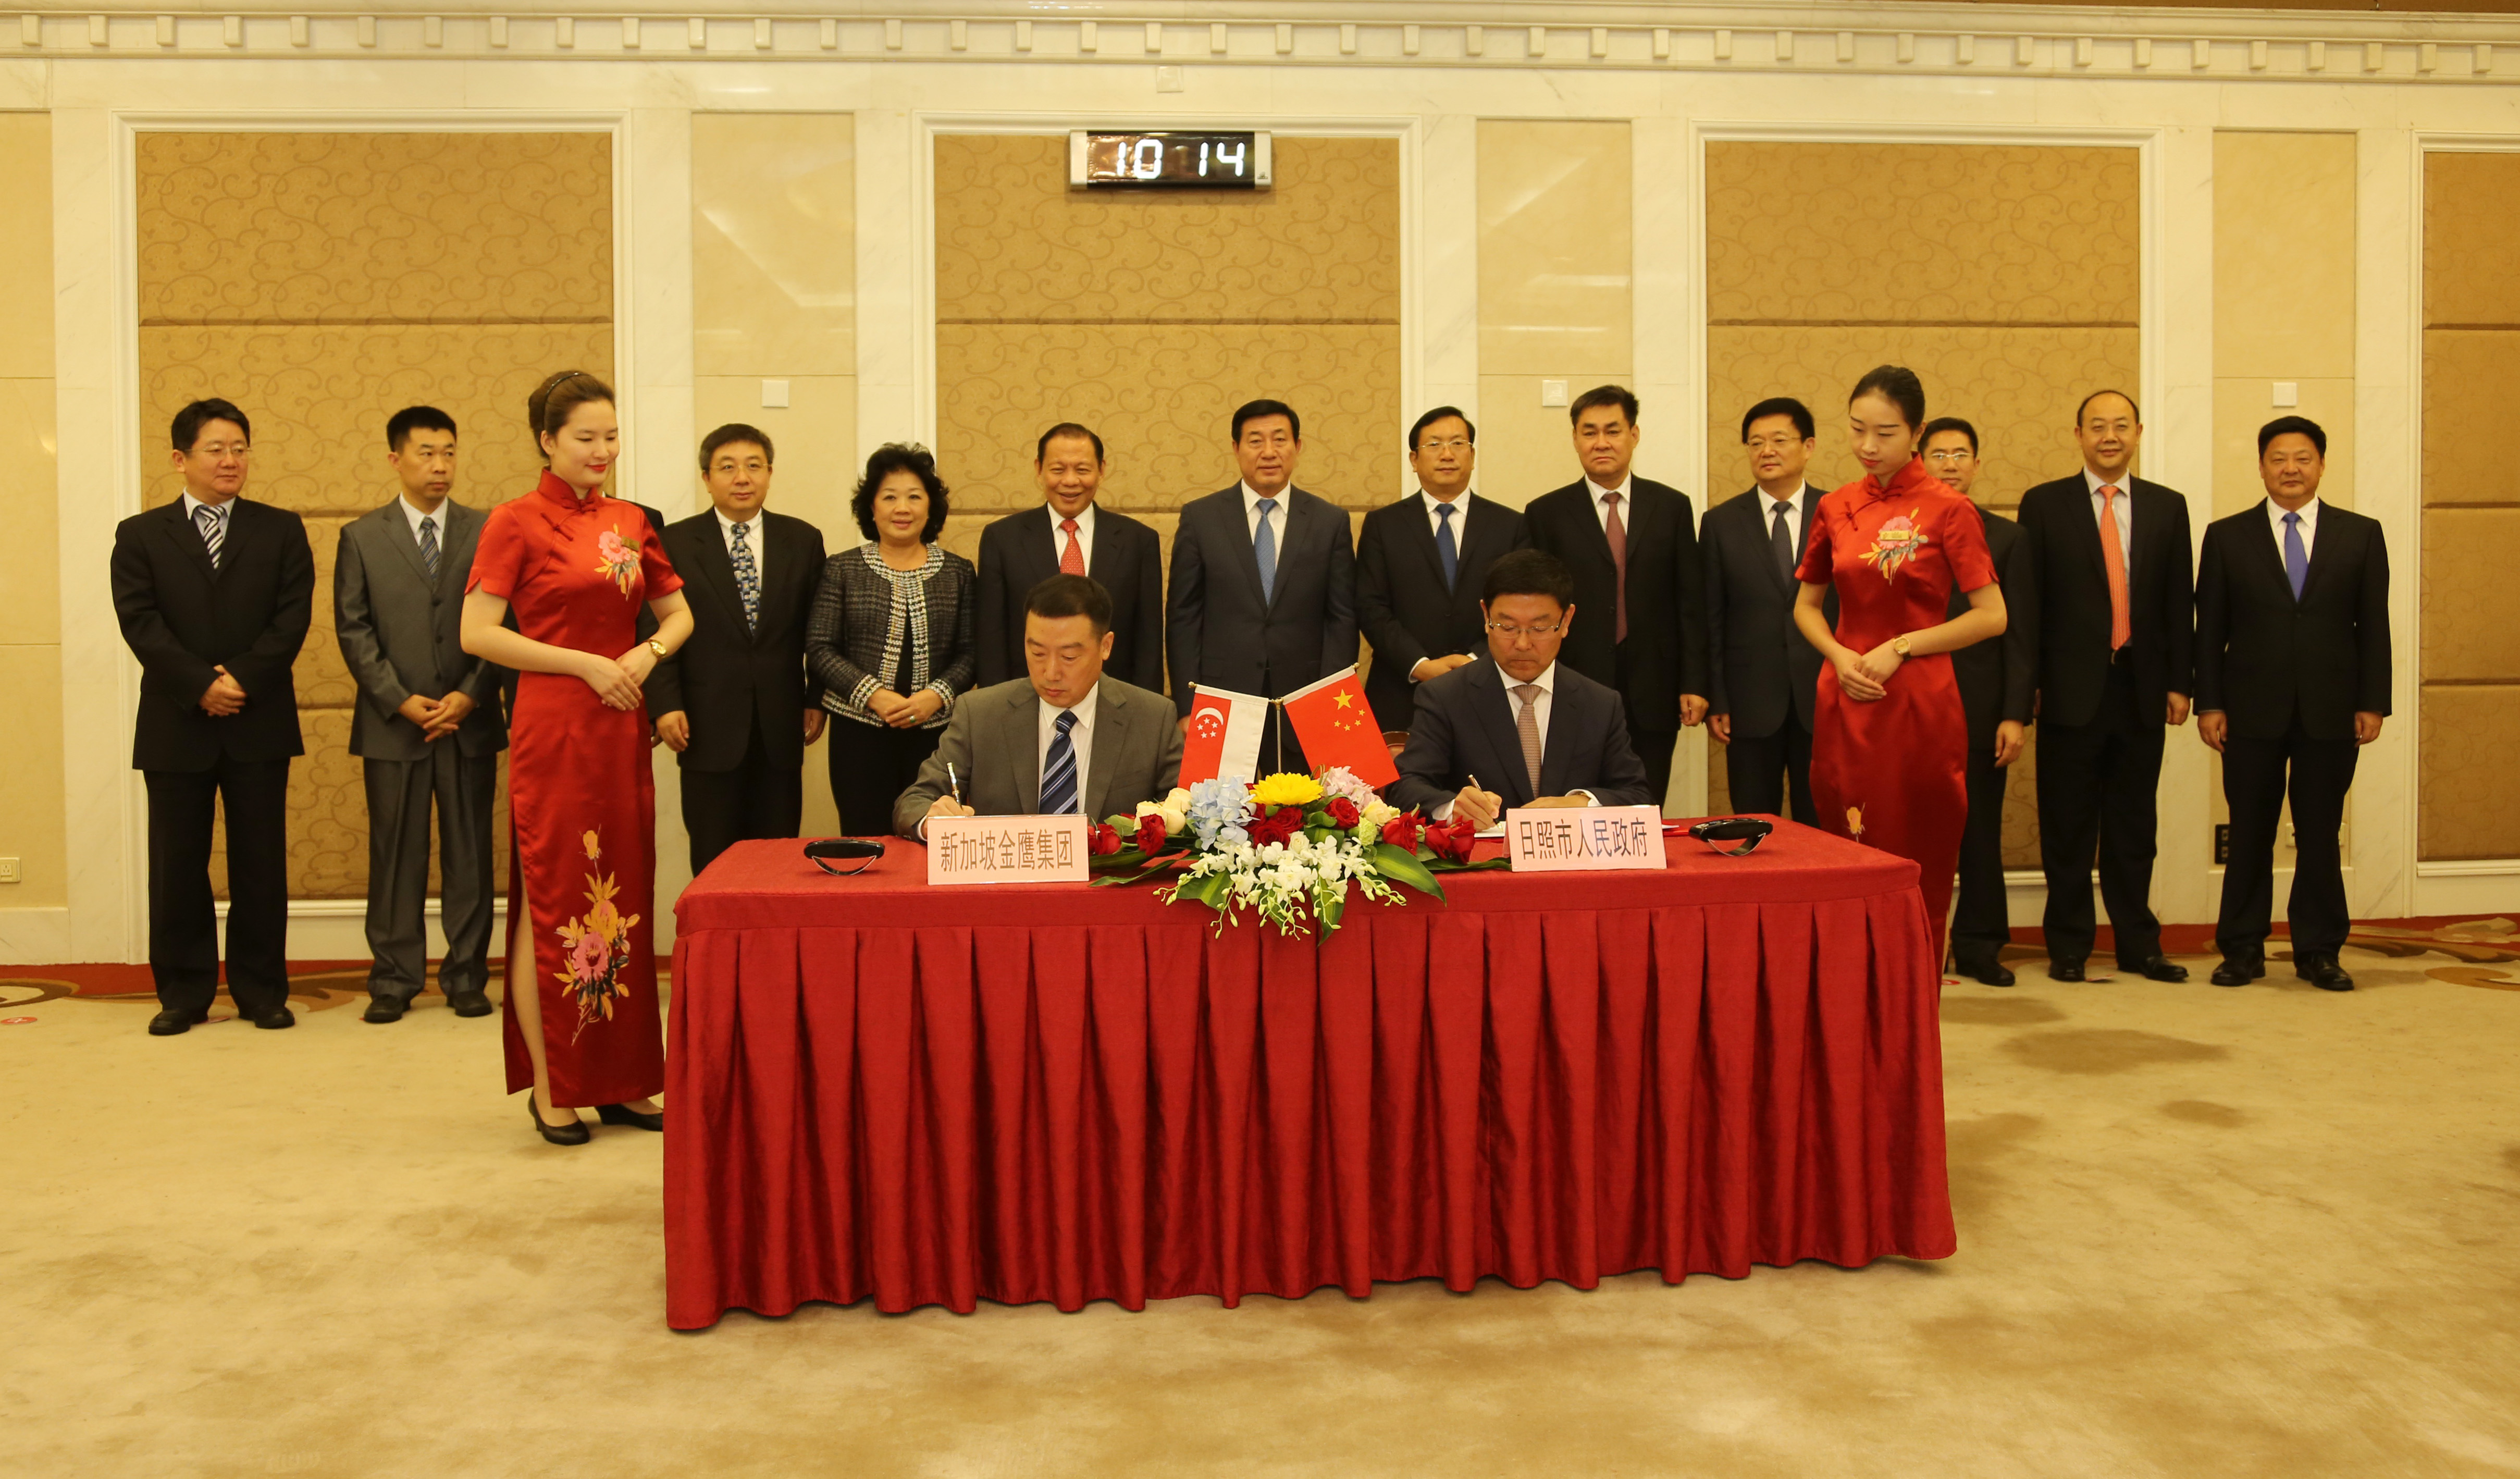 PO&G Rizhao Clean Energy Investment Agreement Ceremony